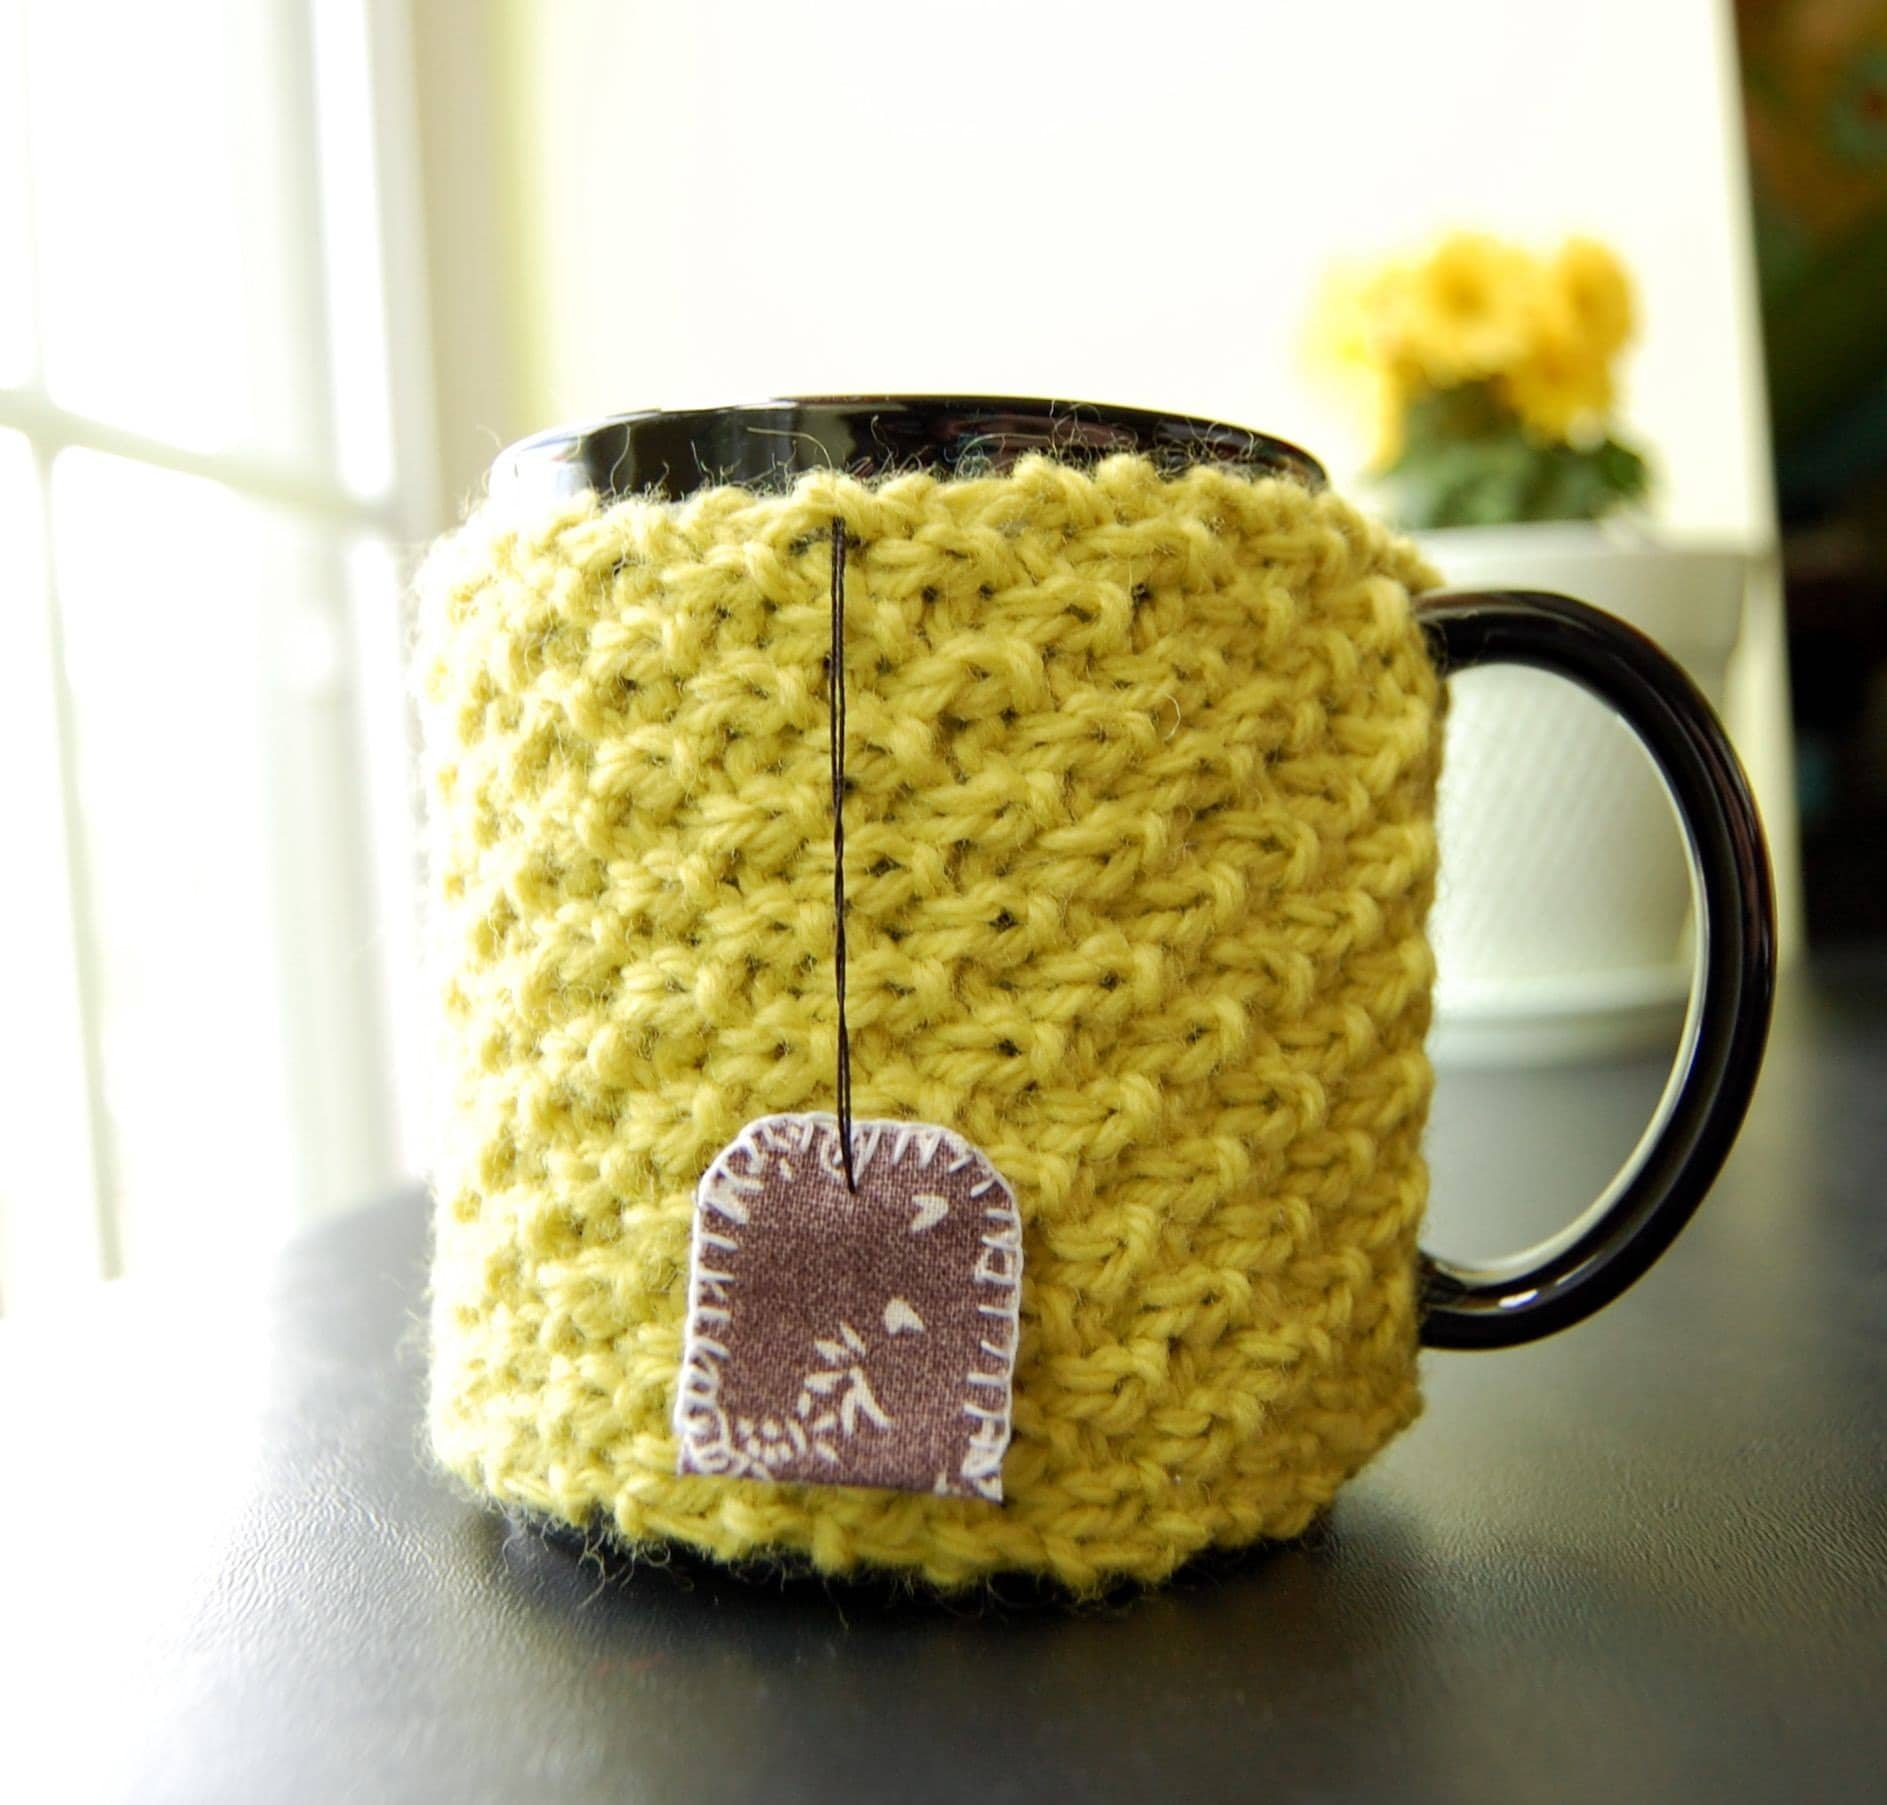 Tea Cozy - Knitted with Hanging Tea Bag